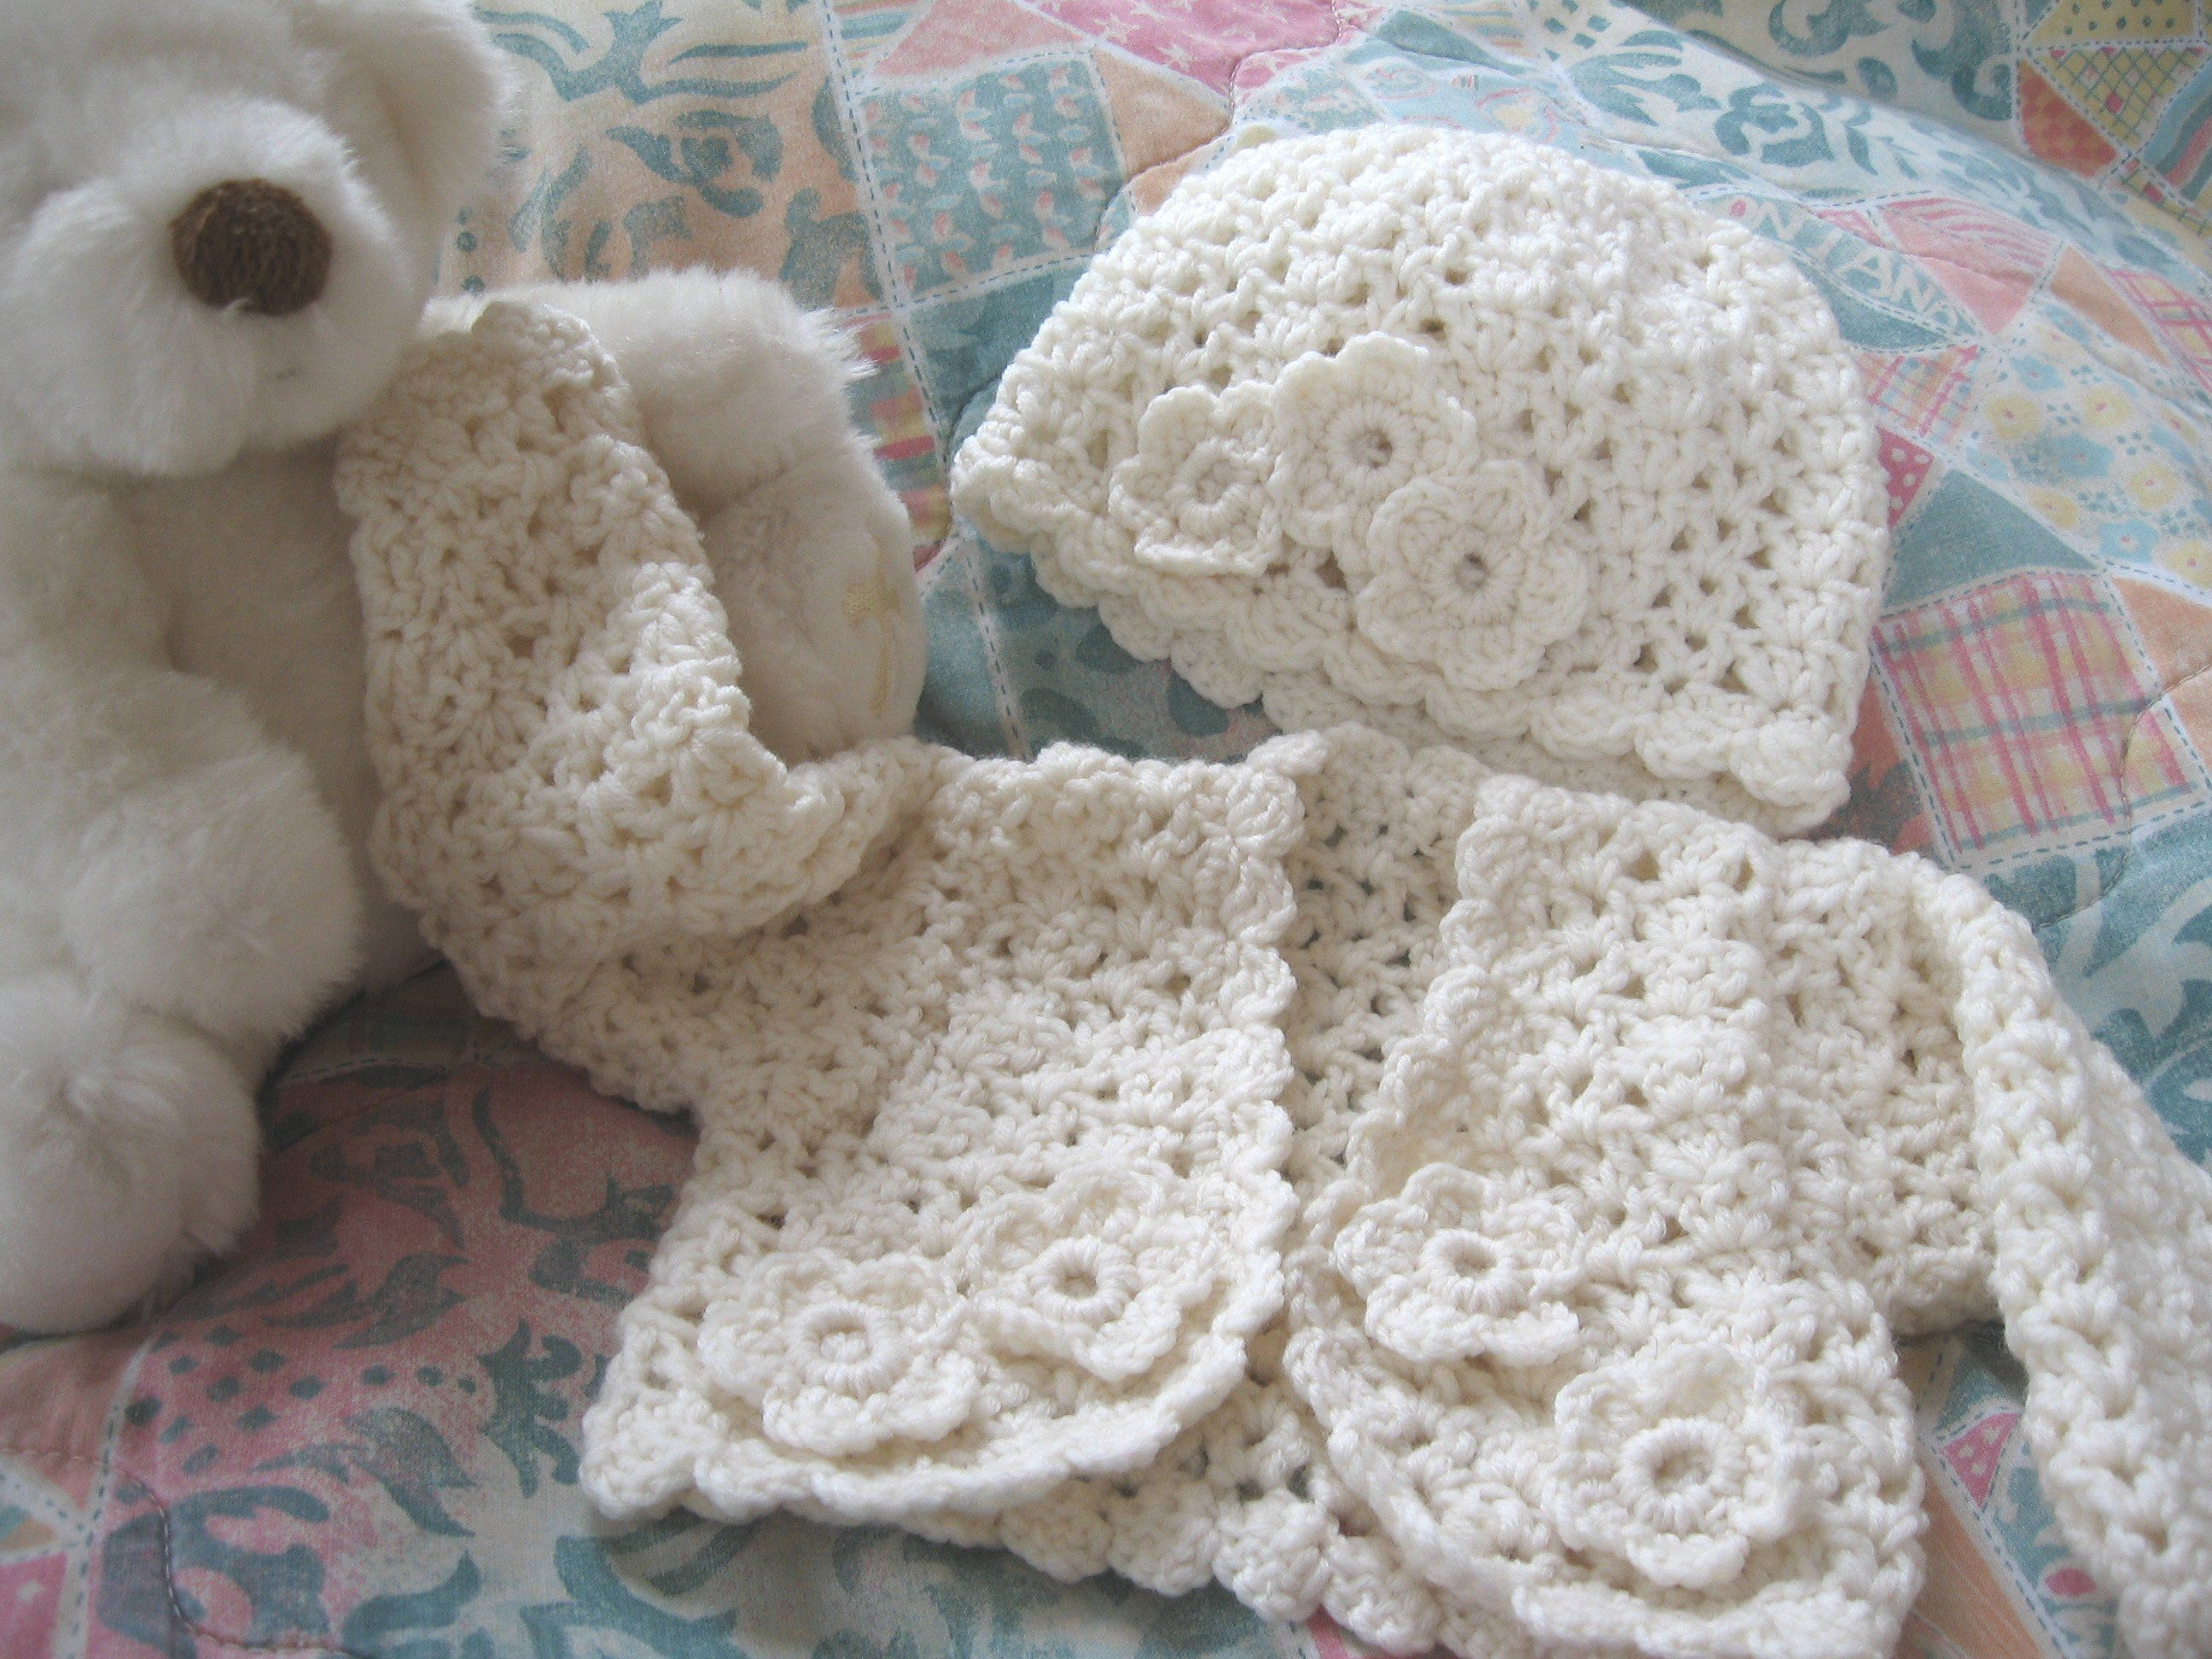 Baby crochet hat and sweater so cute crochet baby sweater baby crochet hat and sweater so cute bankloansurffo Image collections